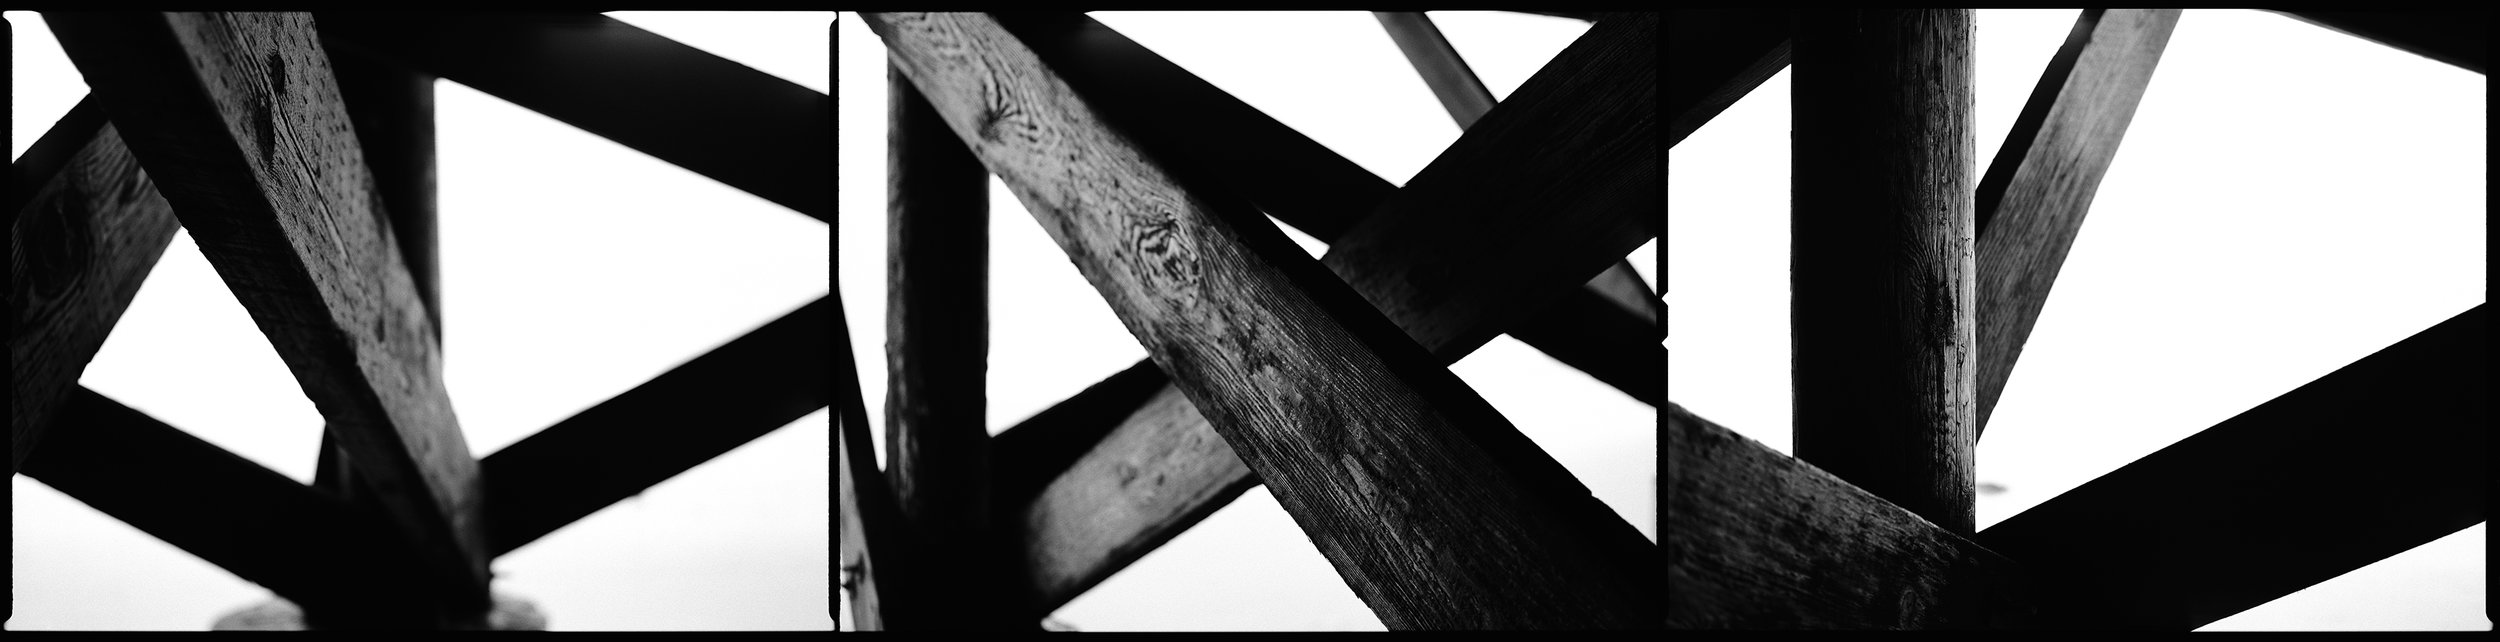 Untitled #23   (Nowhere)  , 2012/ archival pigment   print, 13 1/8  x 48 inches  ,  edition of 3 plus 2 AP